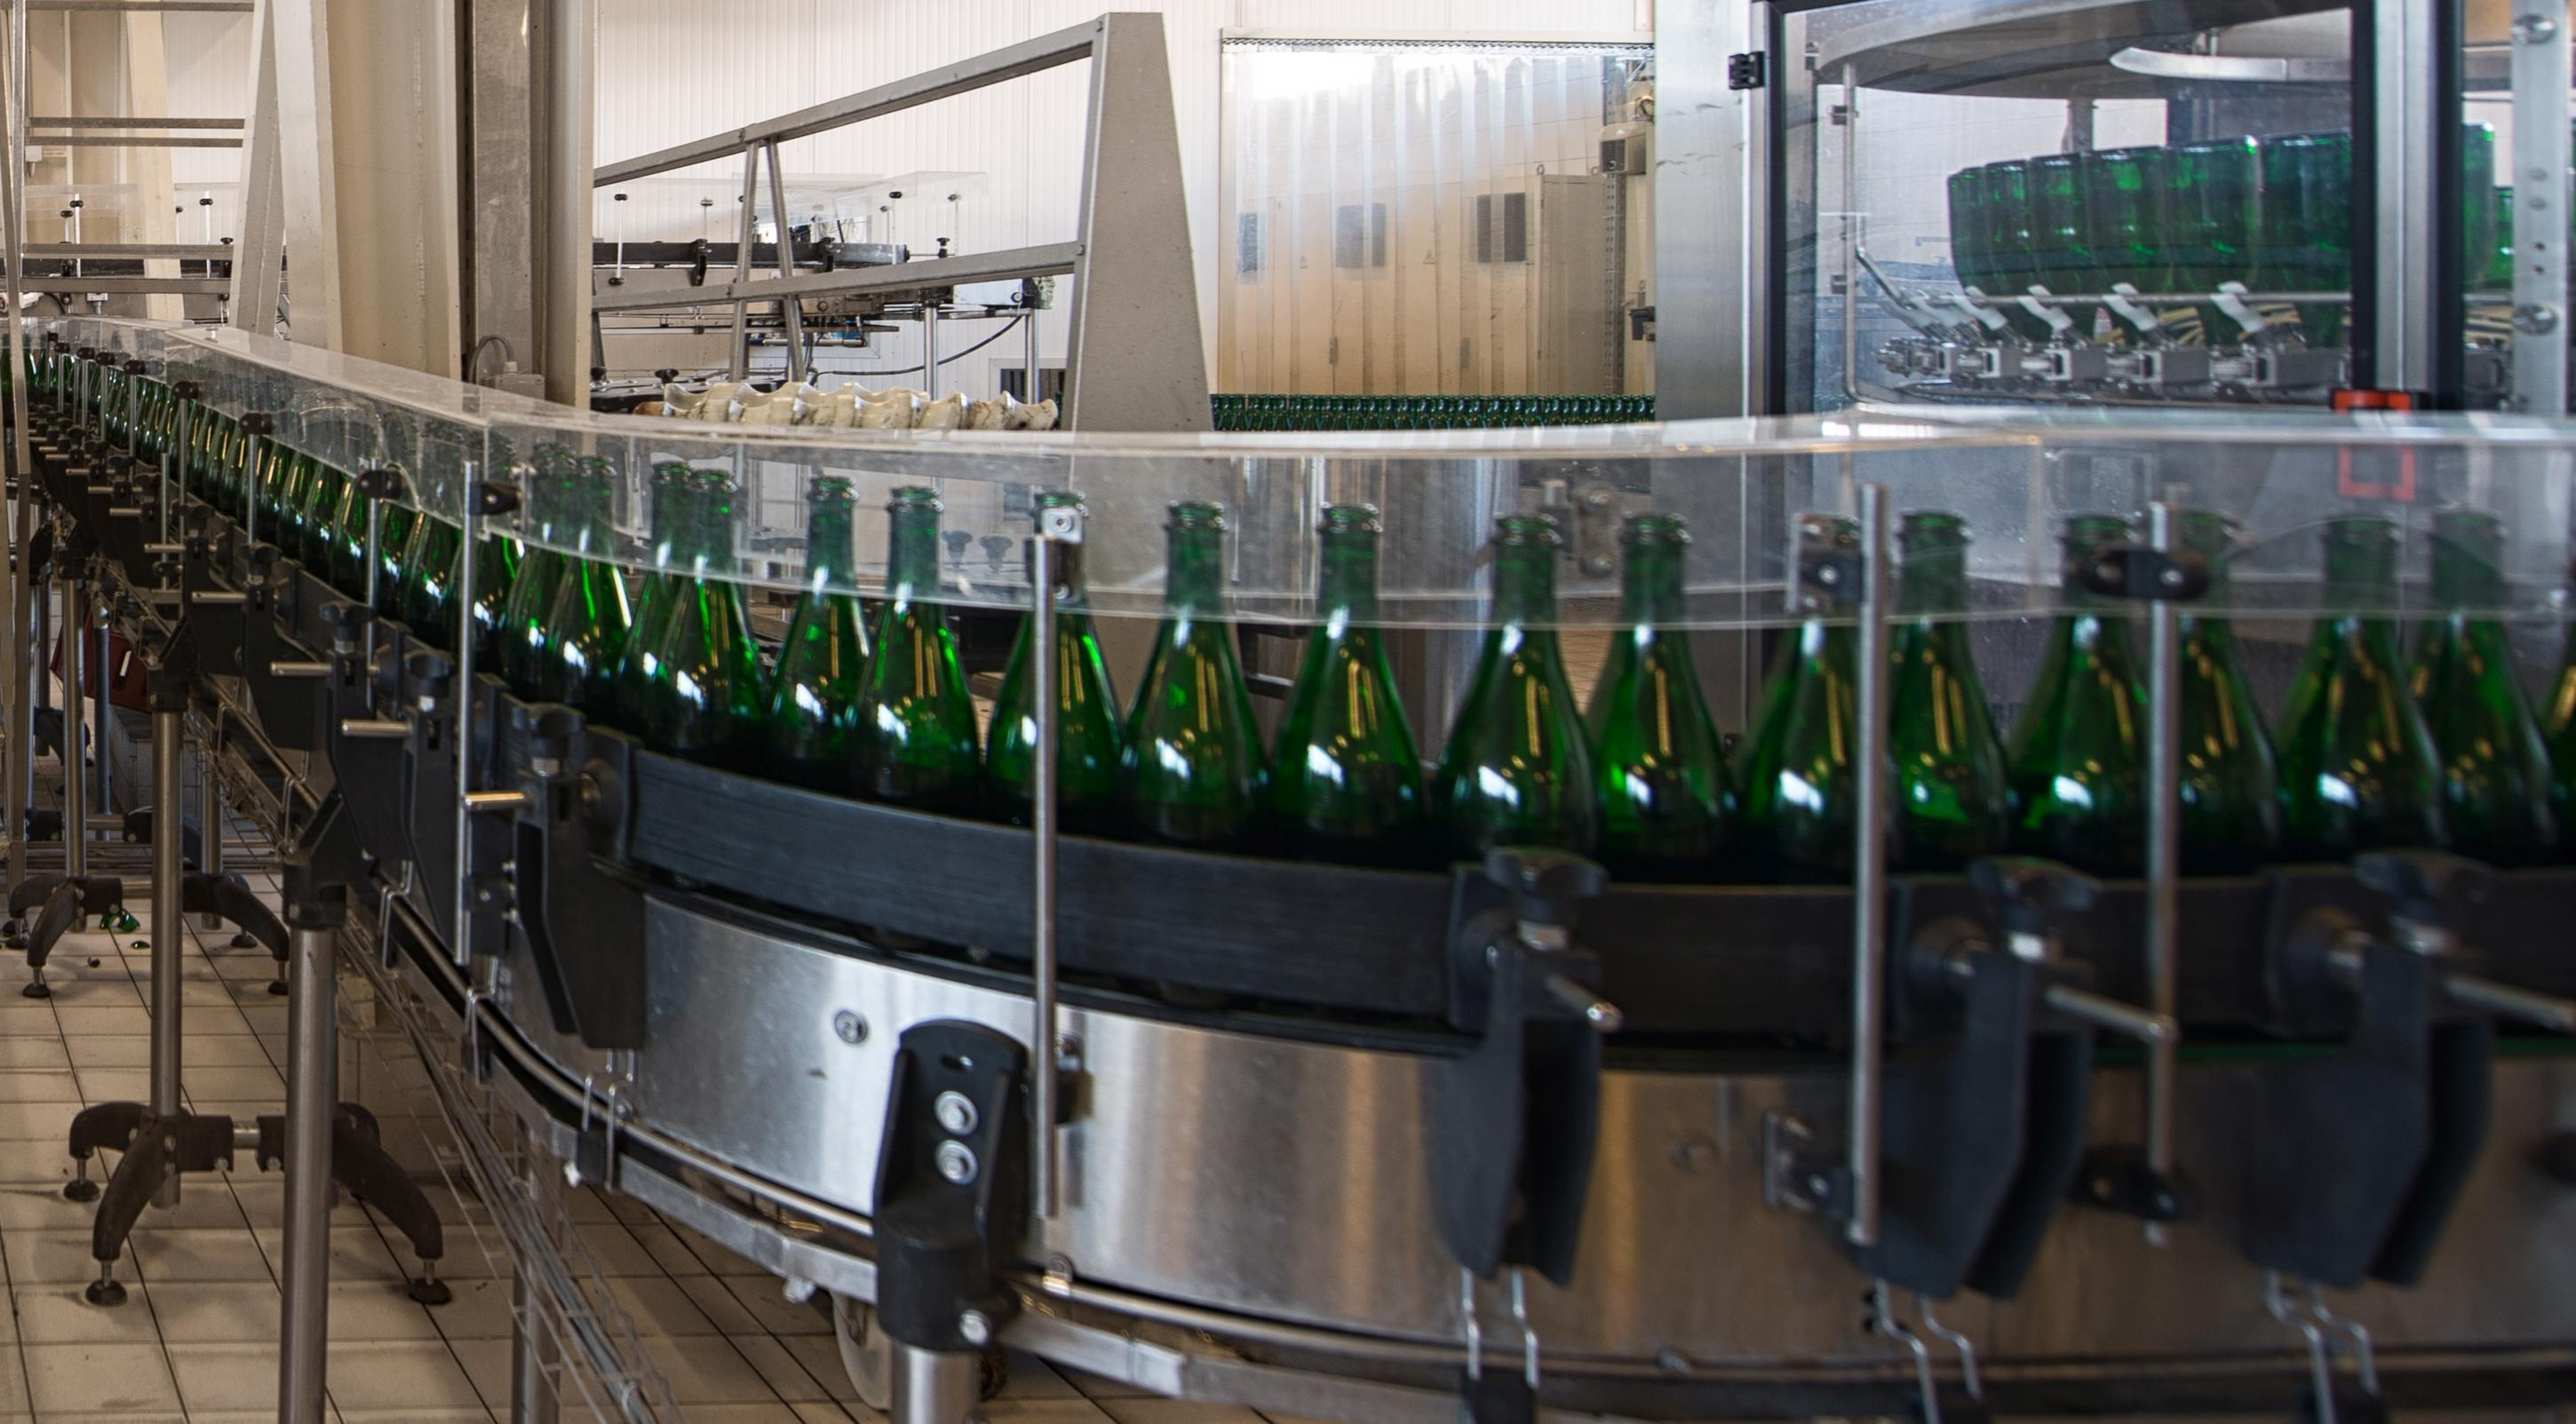 bottling in a beverage manufacturing plant.